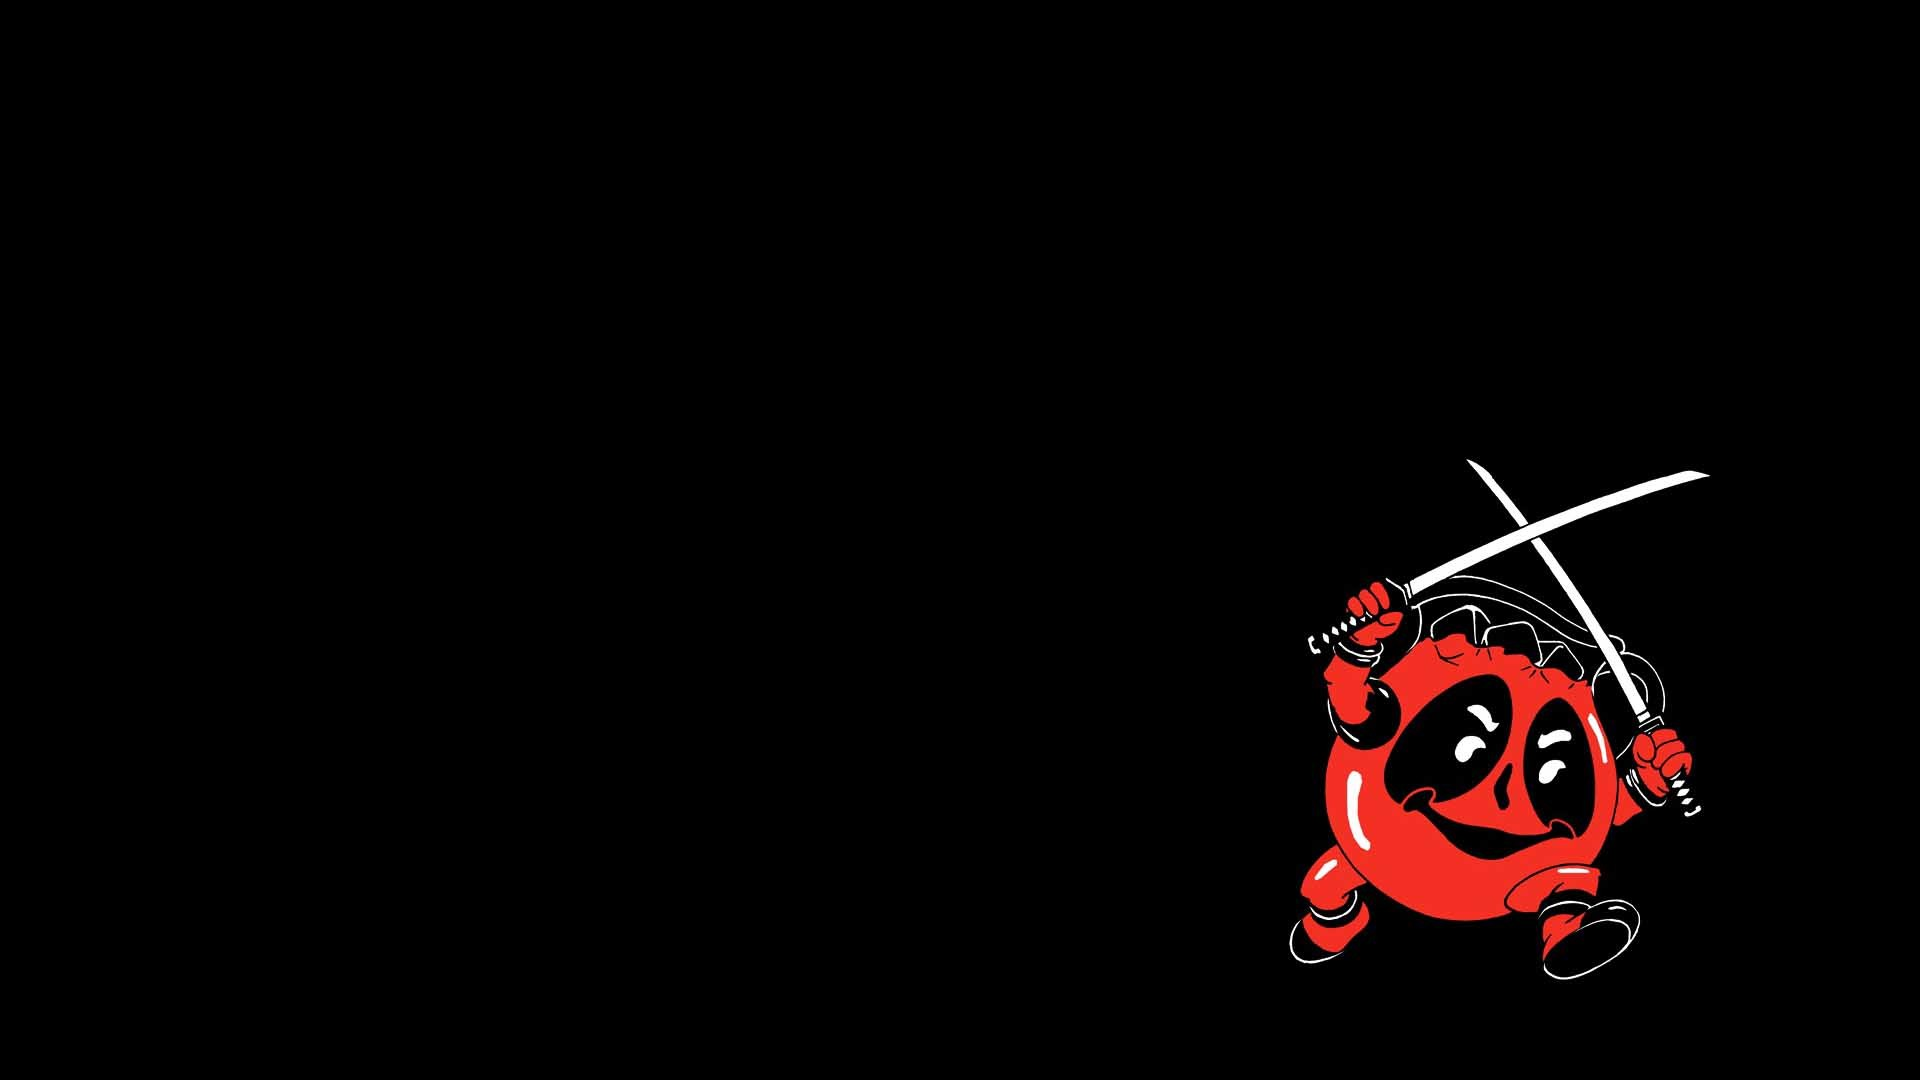 amazing cool deadpool wallpapers hd download free with fun wallpaper.